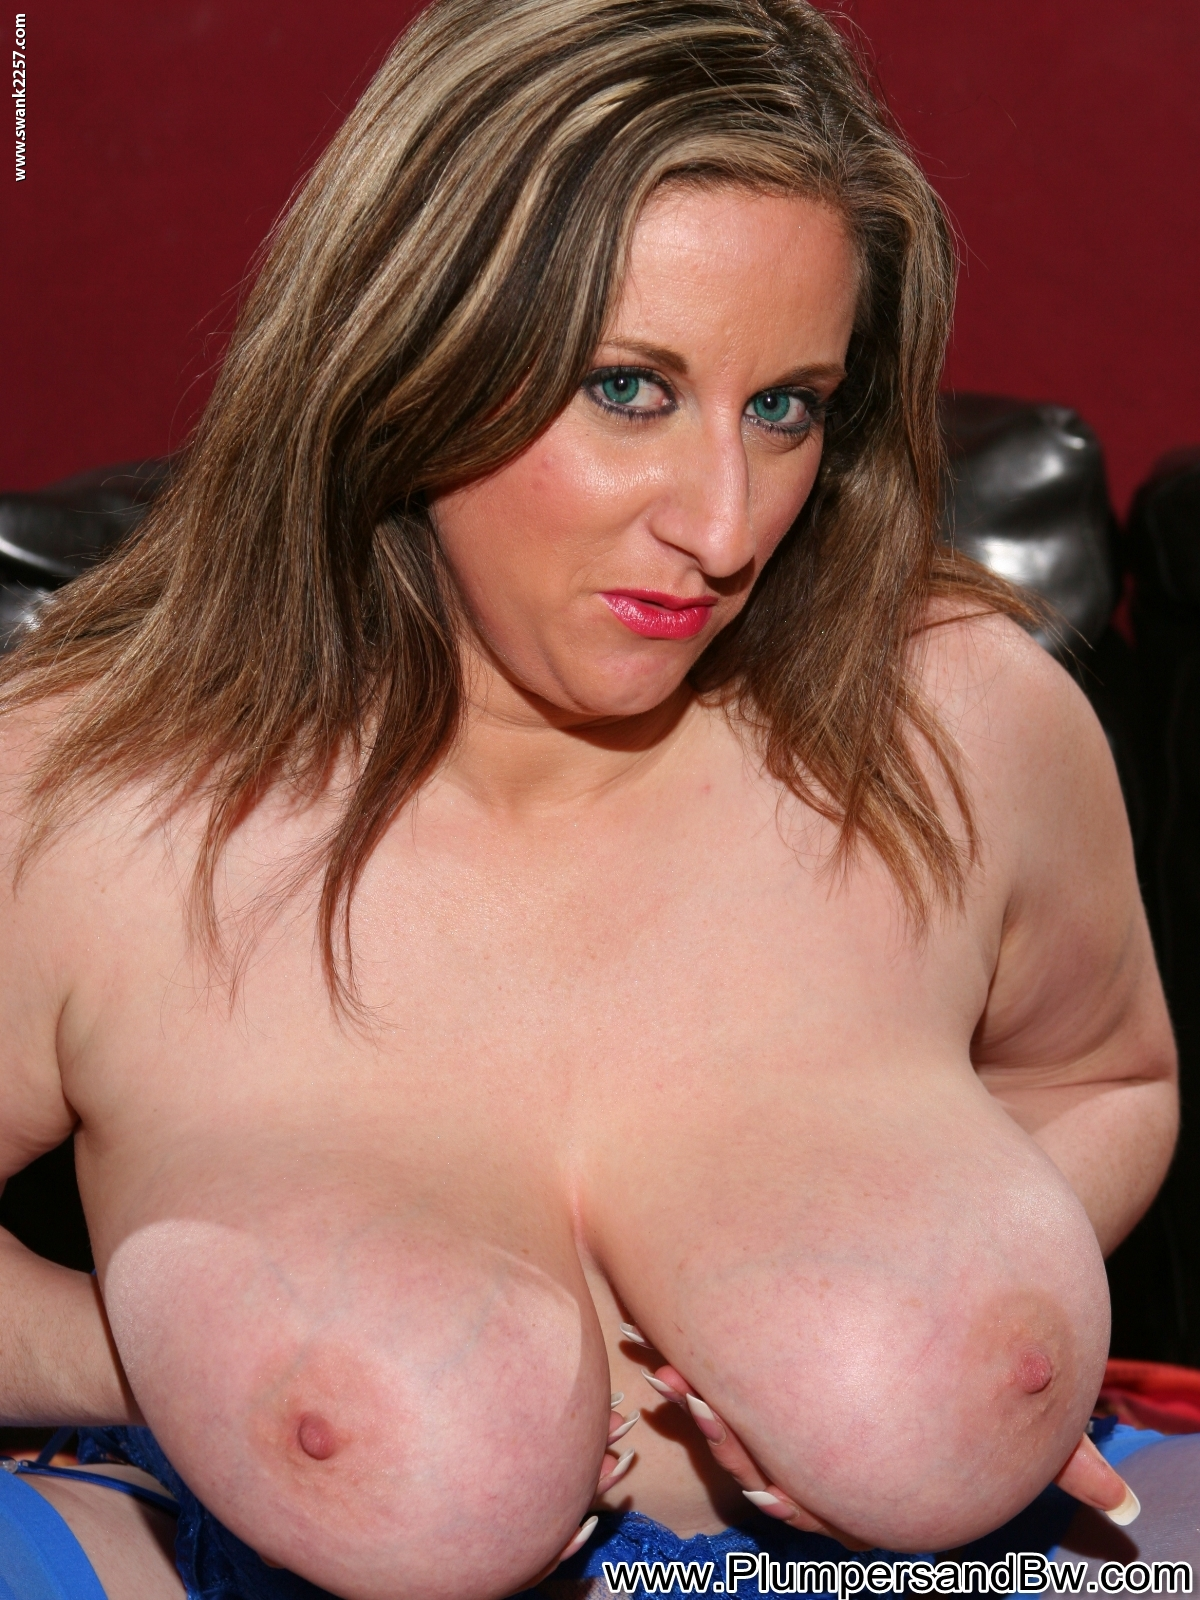 Busty milf kitty lee fucks obama look a like guy disilva - 3 part 2